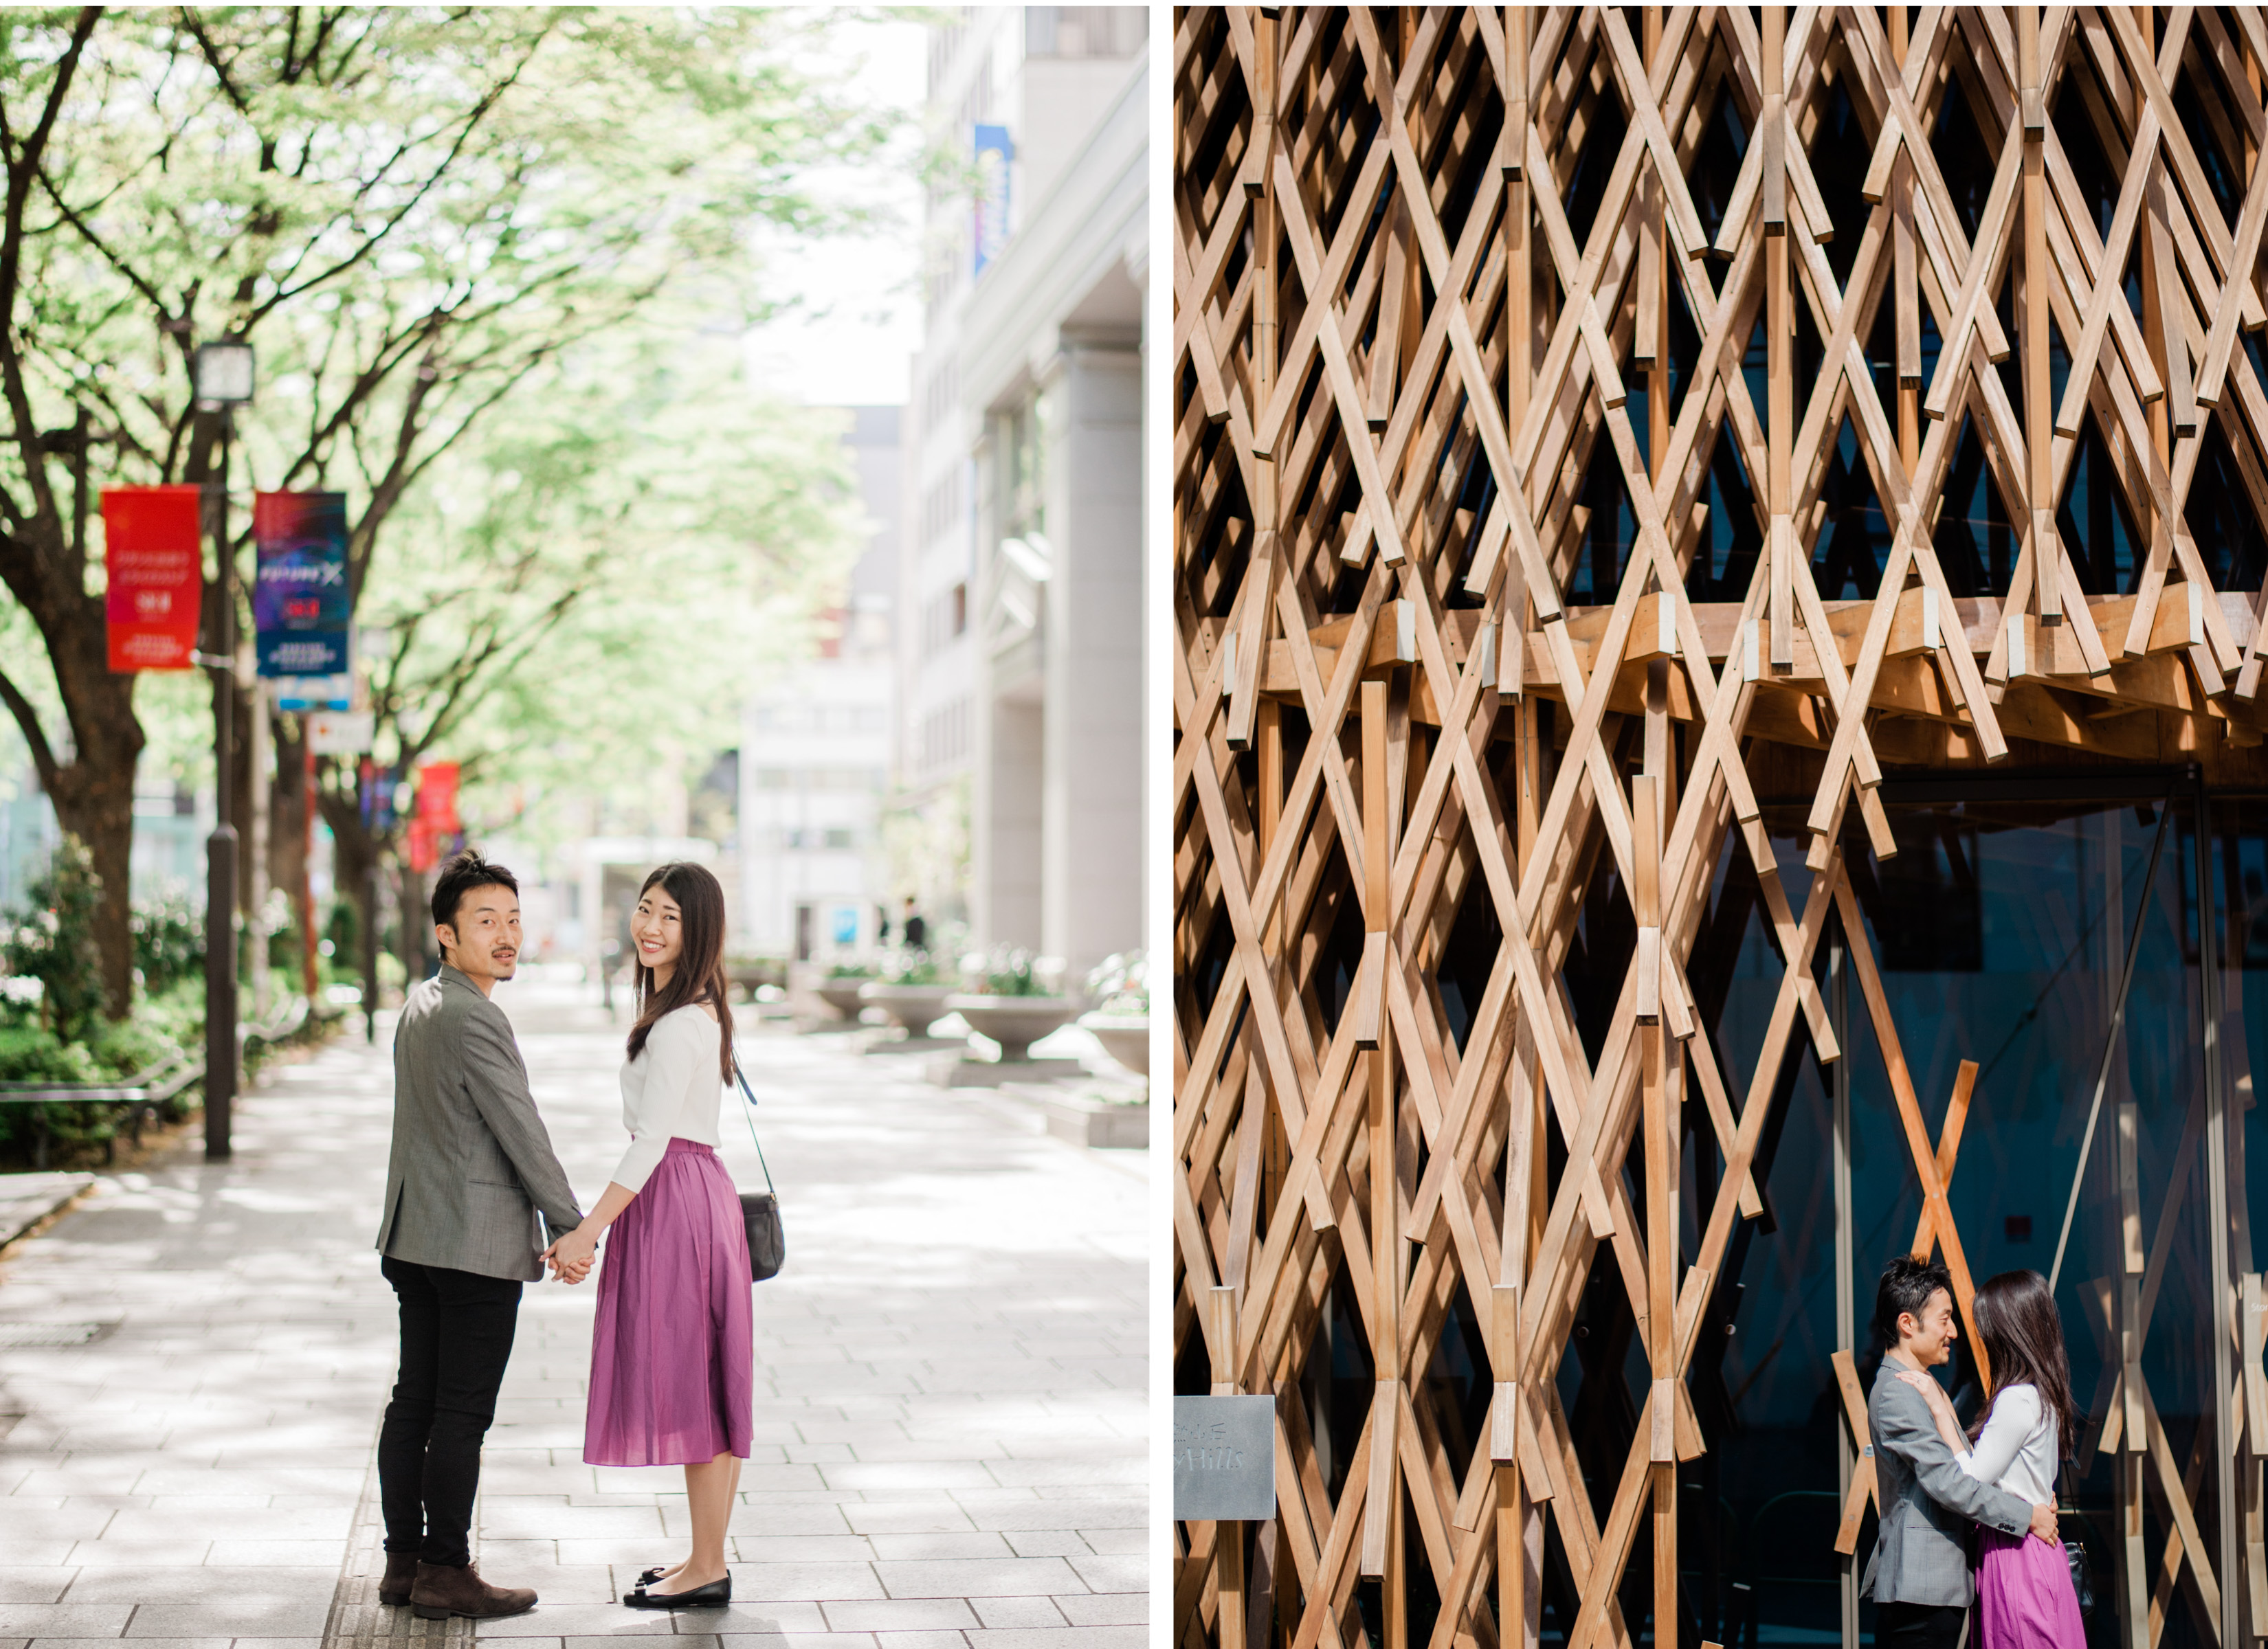 japan-tokyo-casual-engagement-lifestyle-home-prewedding-japanese-couple-outdoor-casual-city-themed